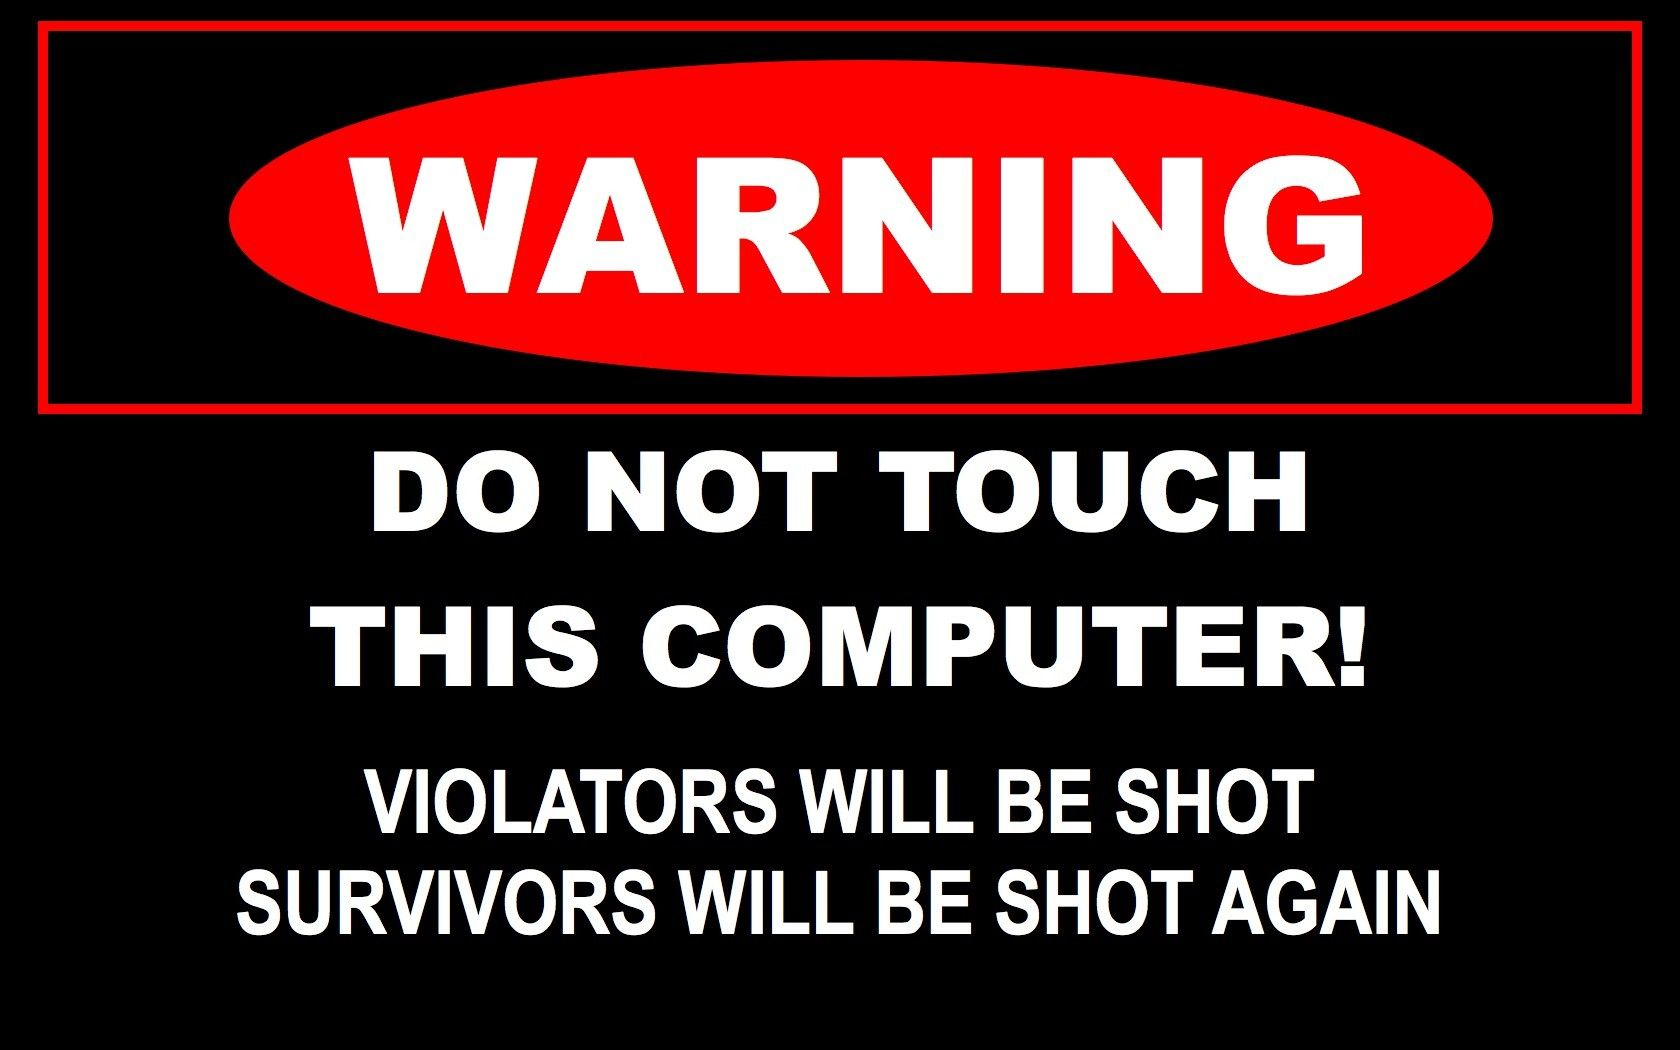 Computers Signs Funny Pc Warning 1680x1050 Wallpaper Funny Warning Signs Funny Wallpapers Computer Humor